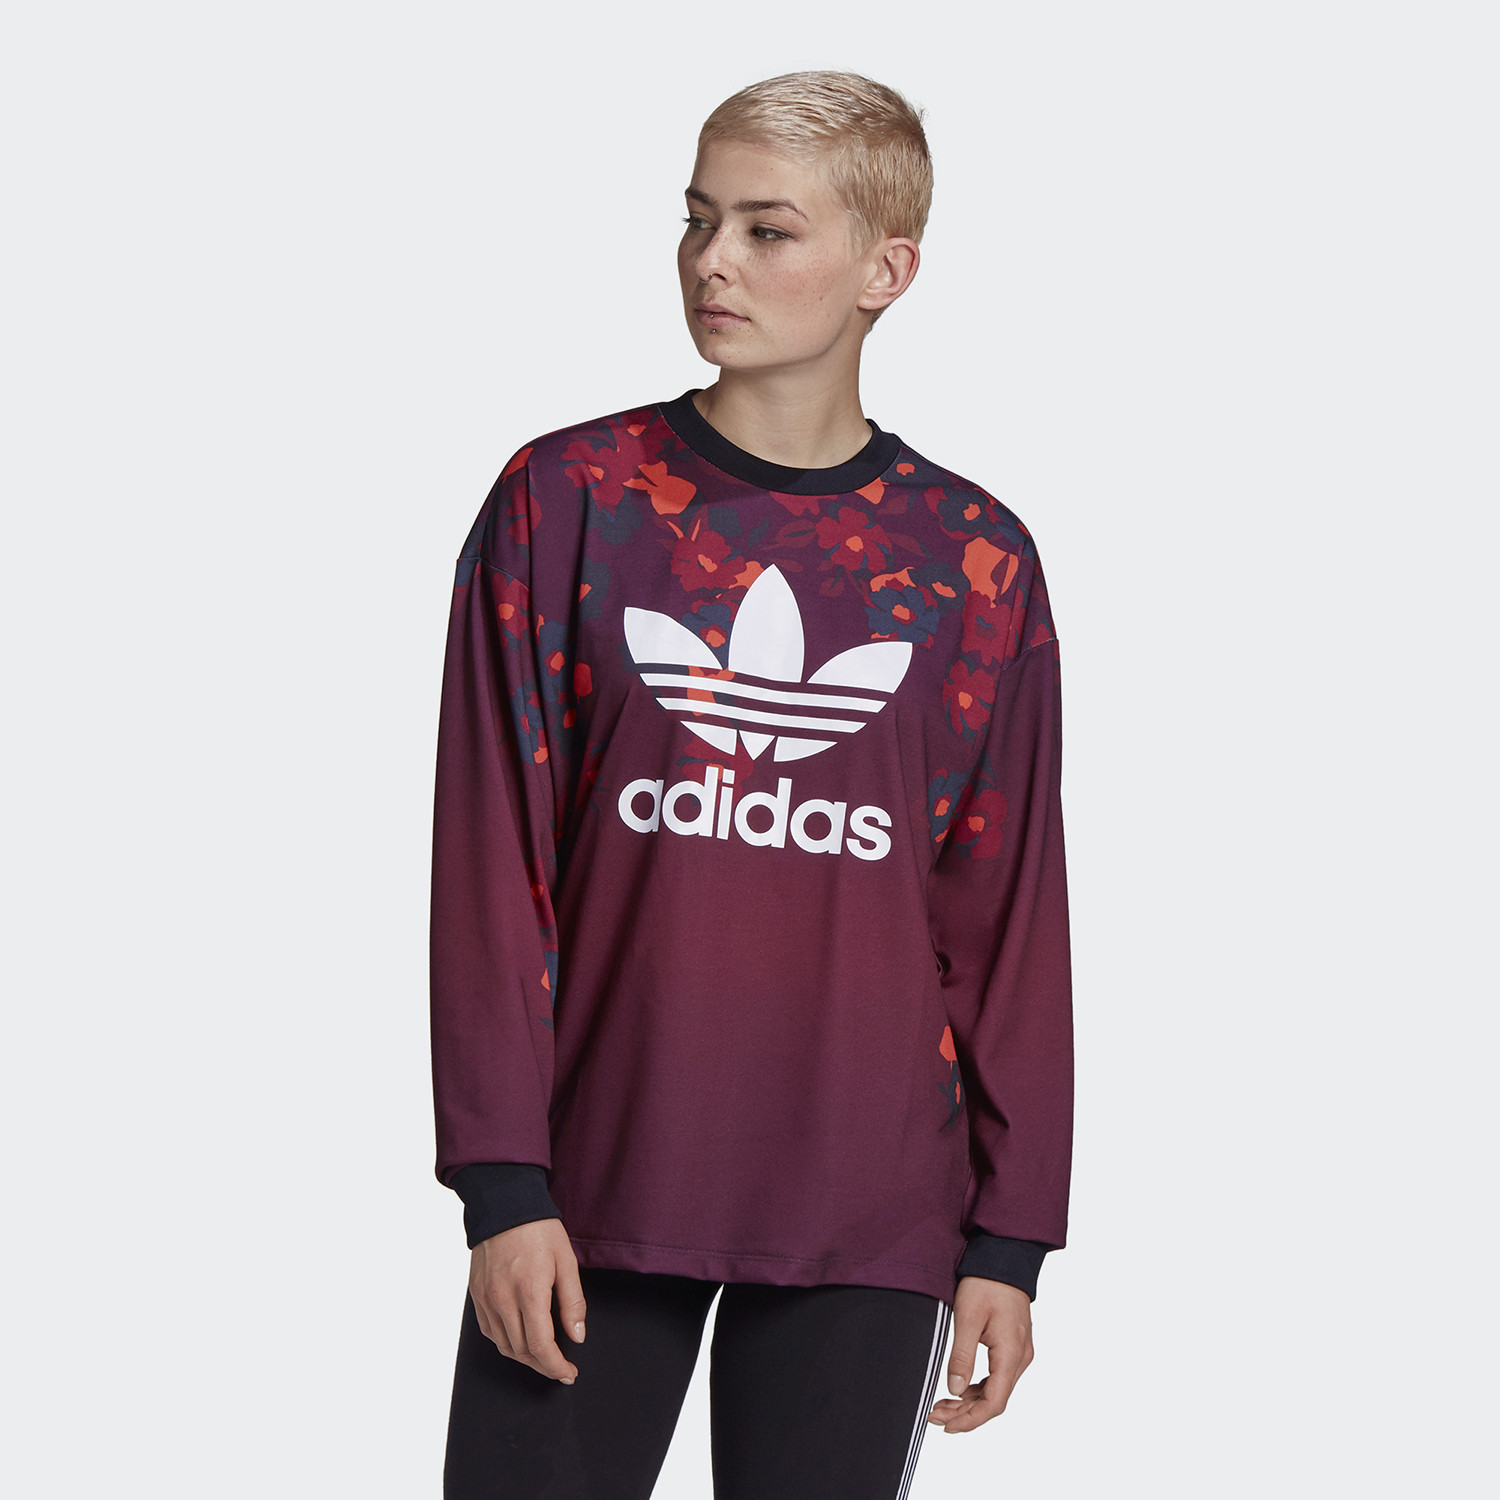 adidas Originals Her Studio London Crew Γυναικείο Φούτερ (9000060205_5775)